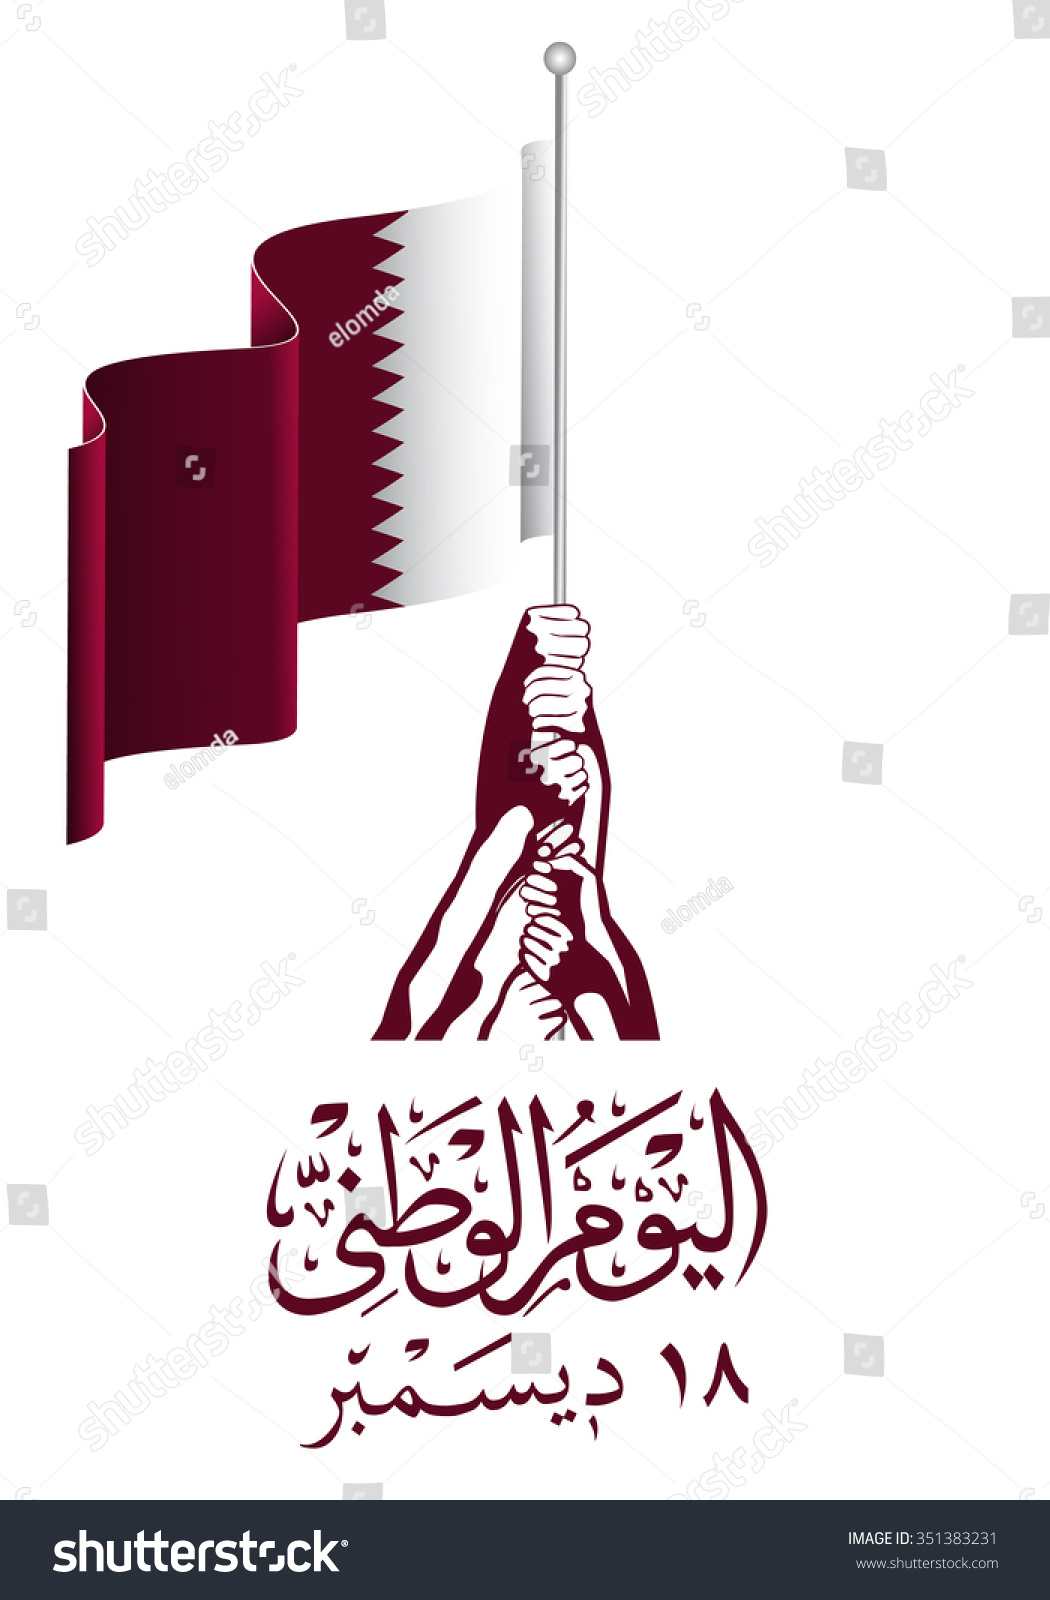 Qatar National Day Qatar Independence Day Stock Vector